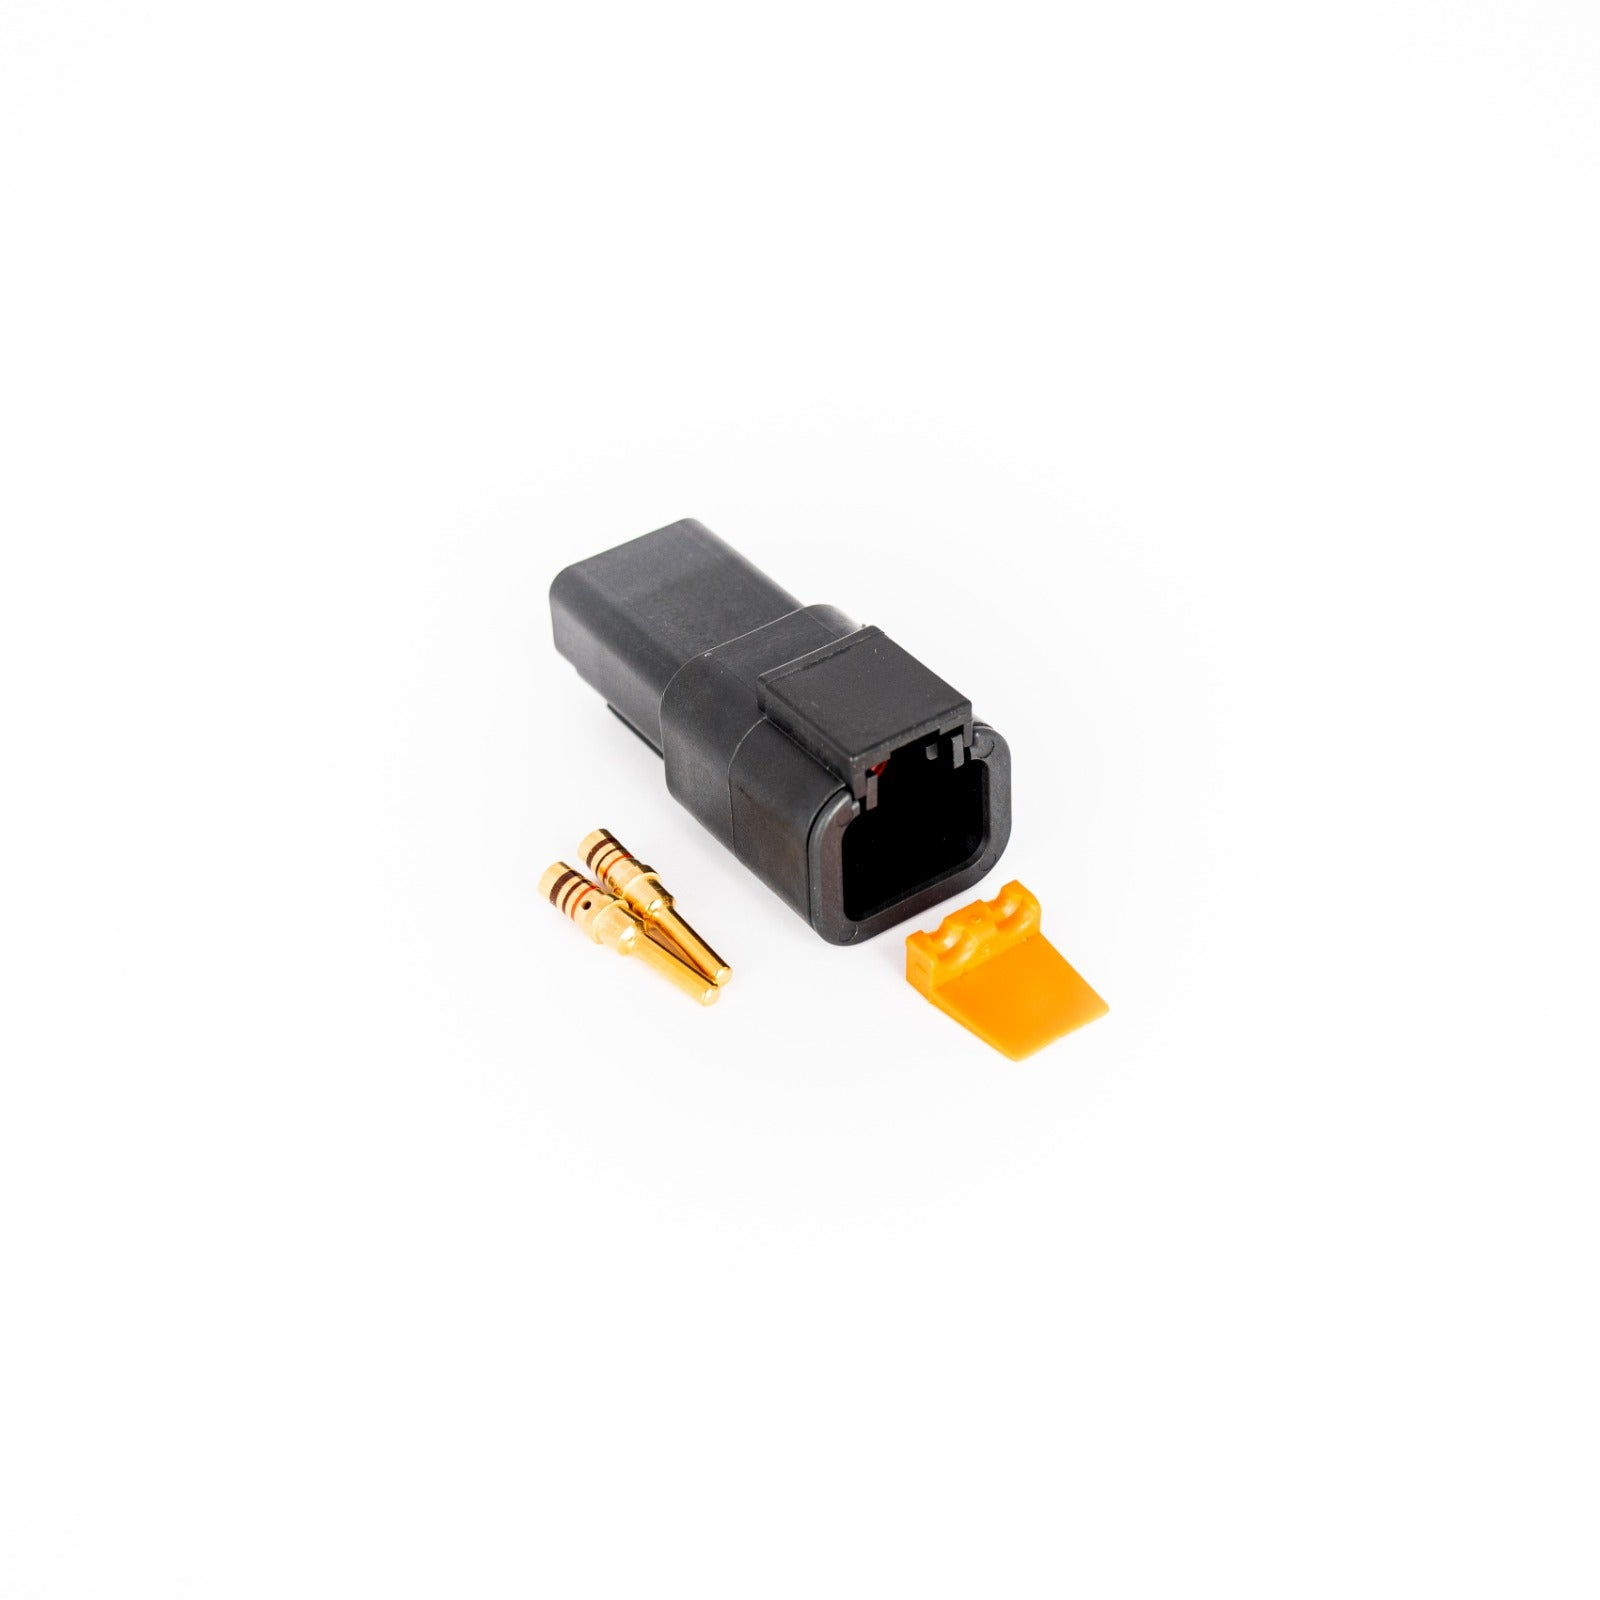 DTP/DTHD Receptacle Connector Kit